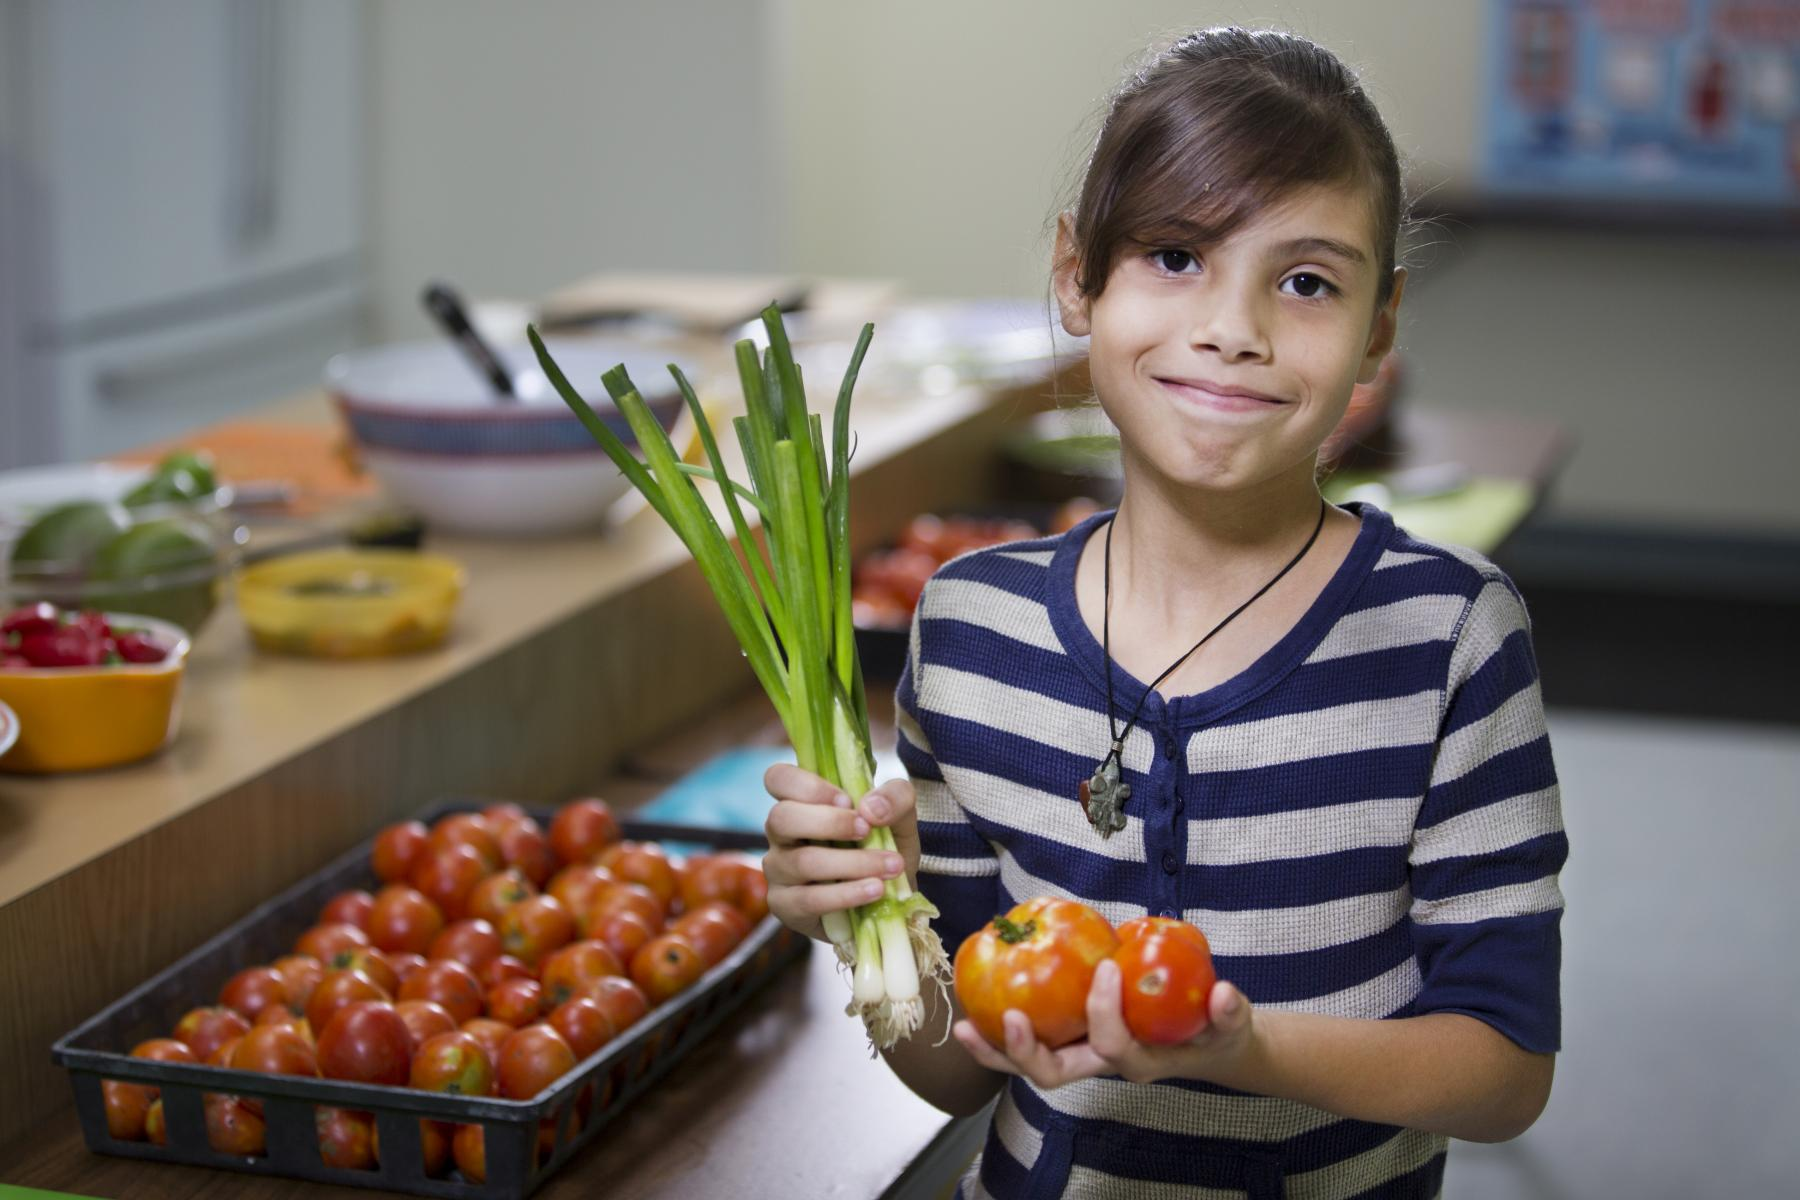 child showing off fresh fruits and vegetables